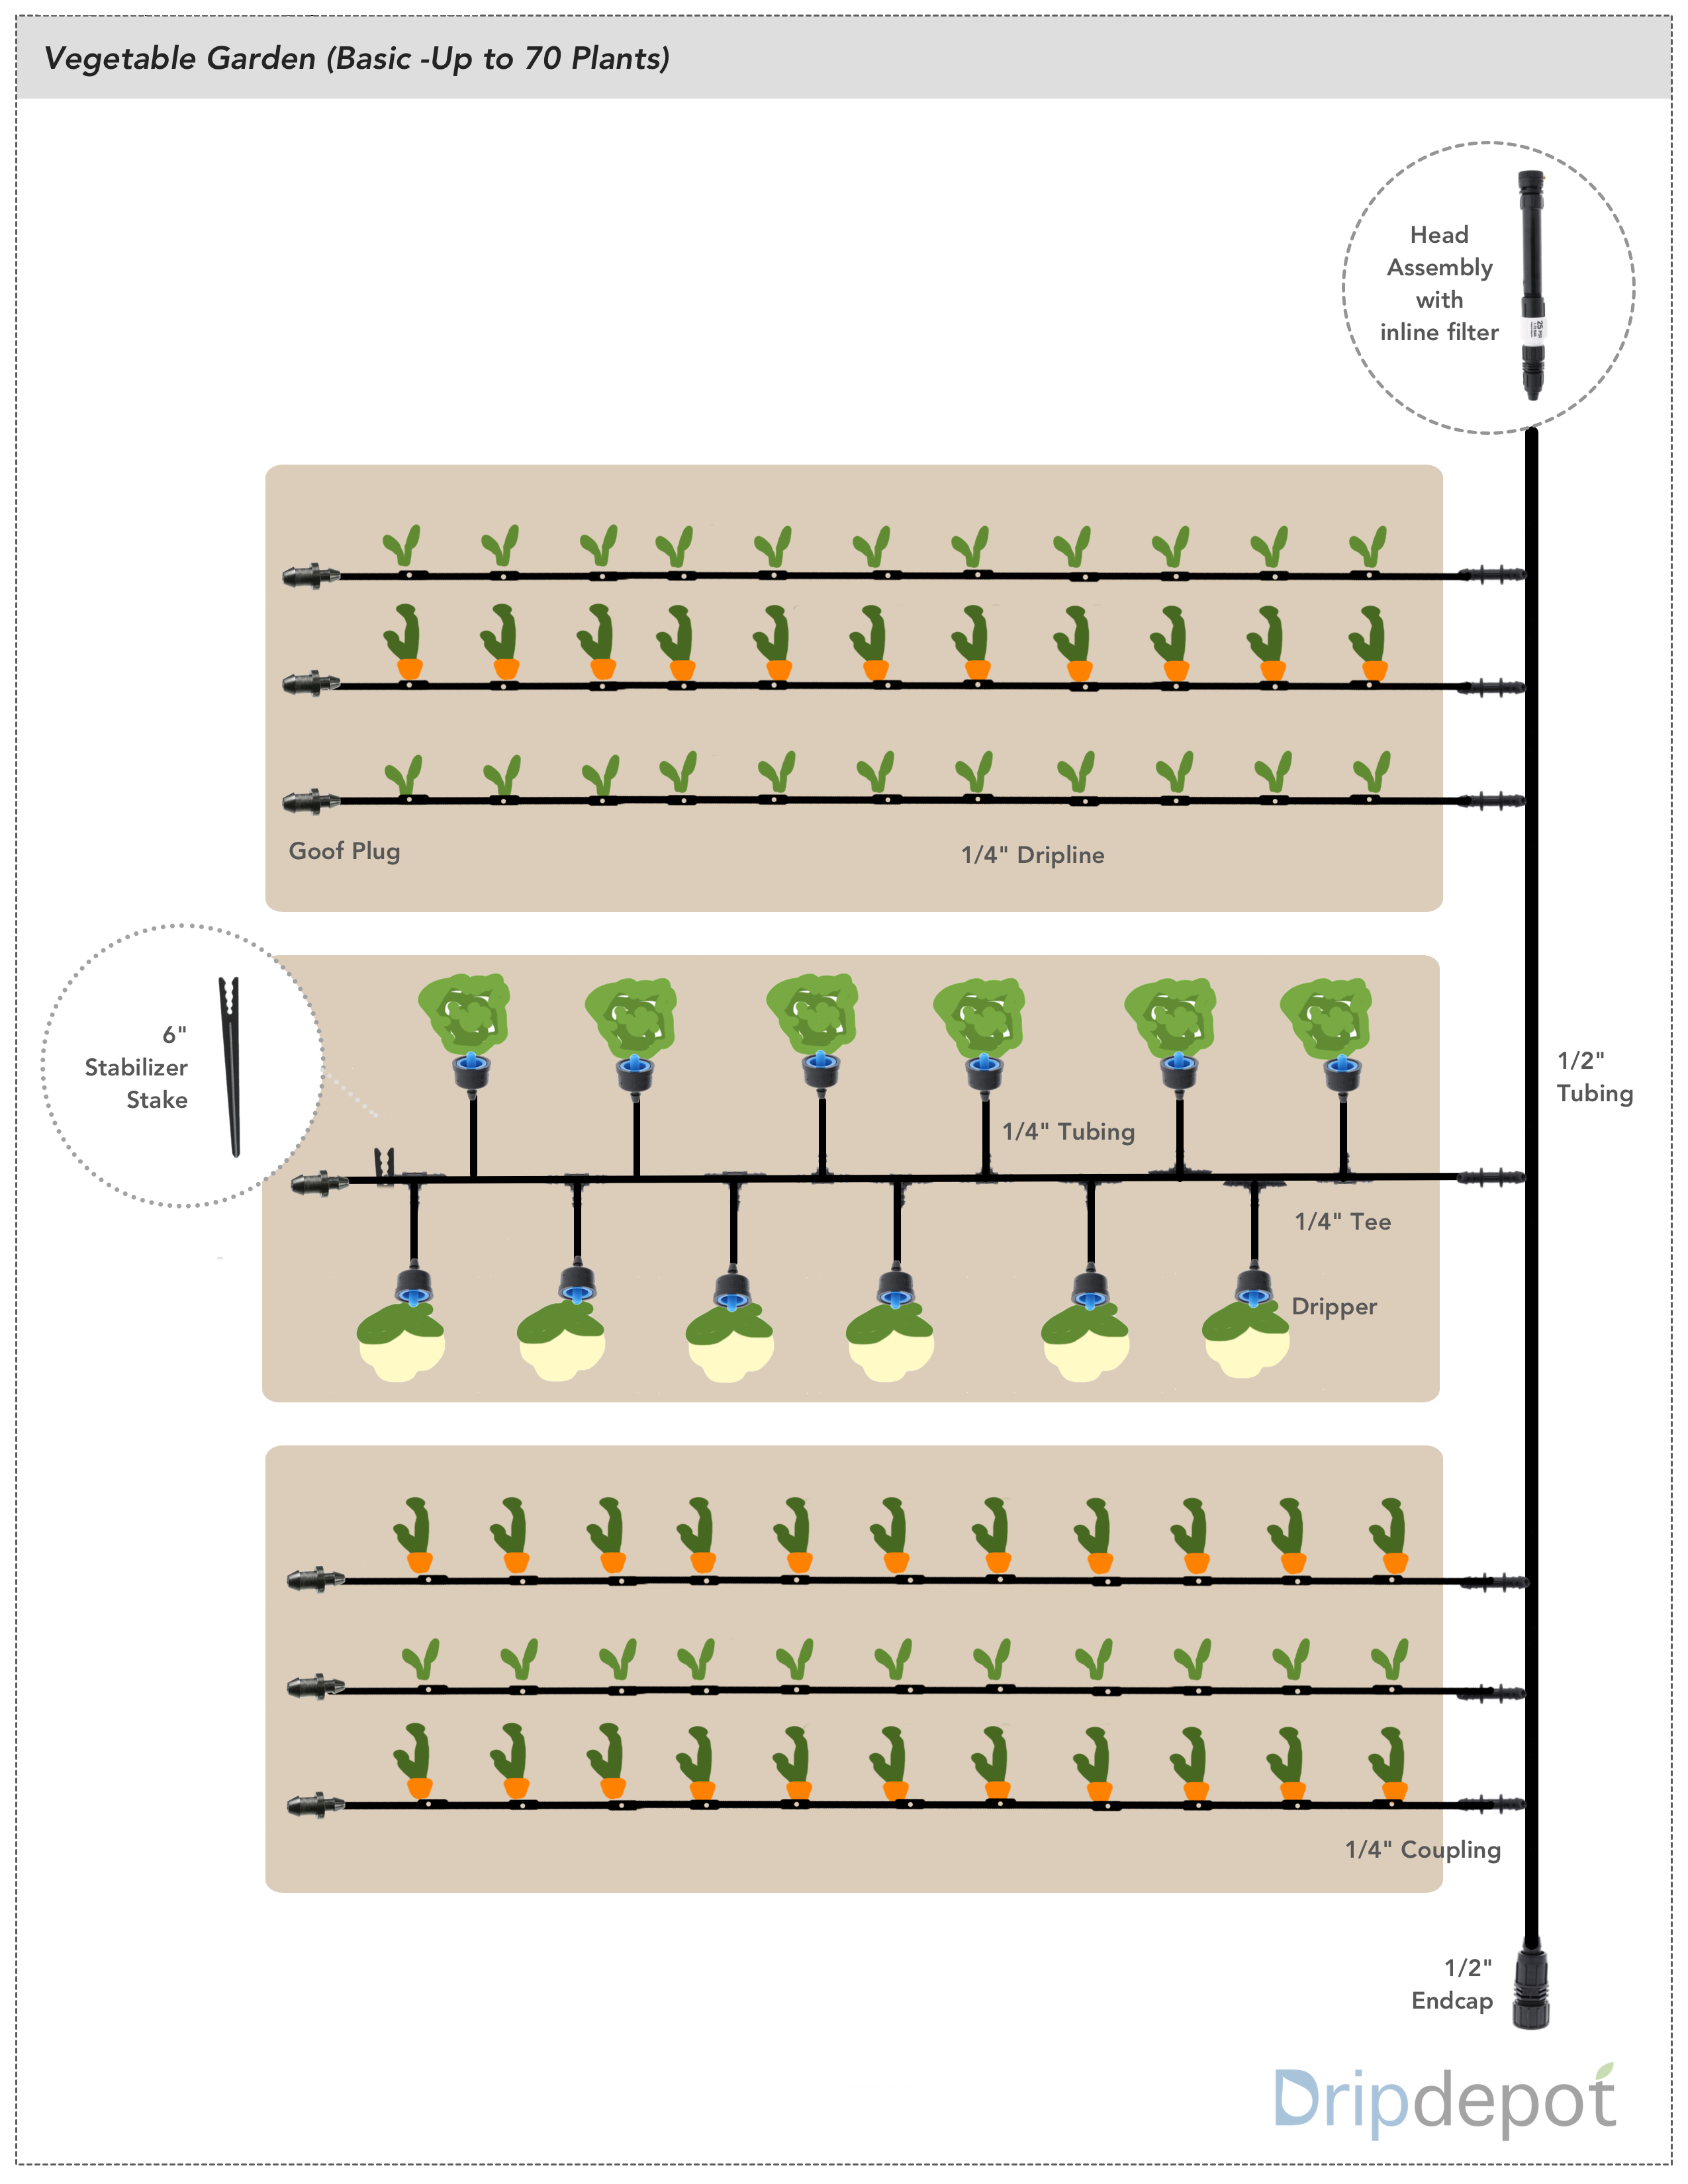 Sample Layouts And Designs For Vegetable Gardens Drip